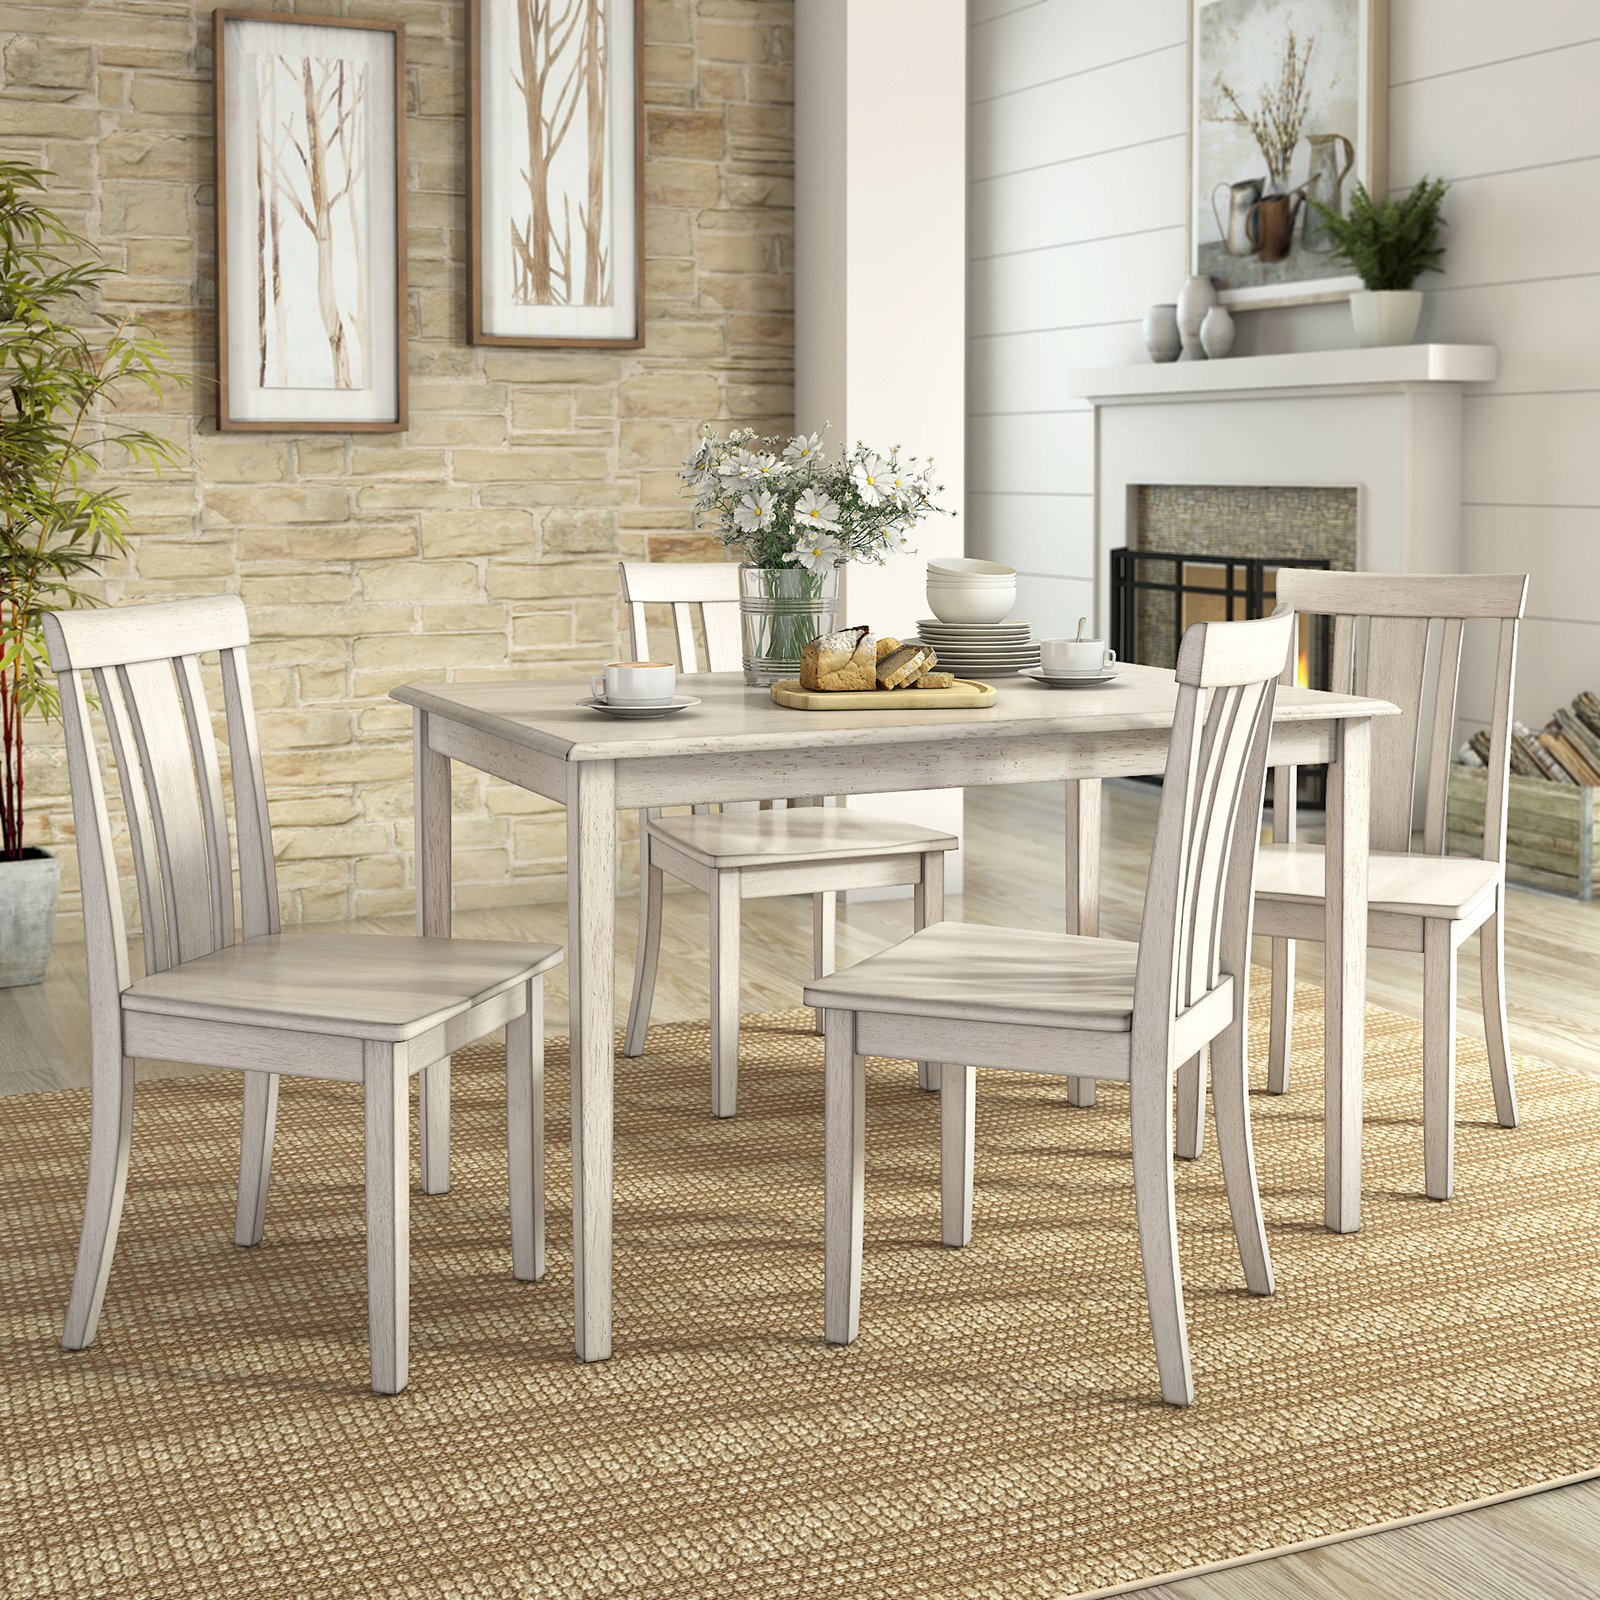 Lexington 5-Piece Dining Set with 4 Slat Back Chairs